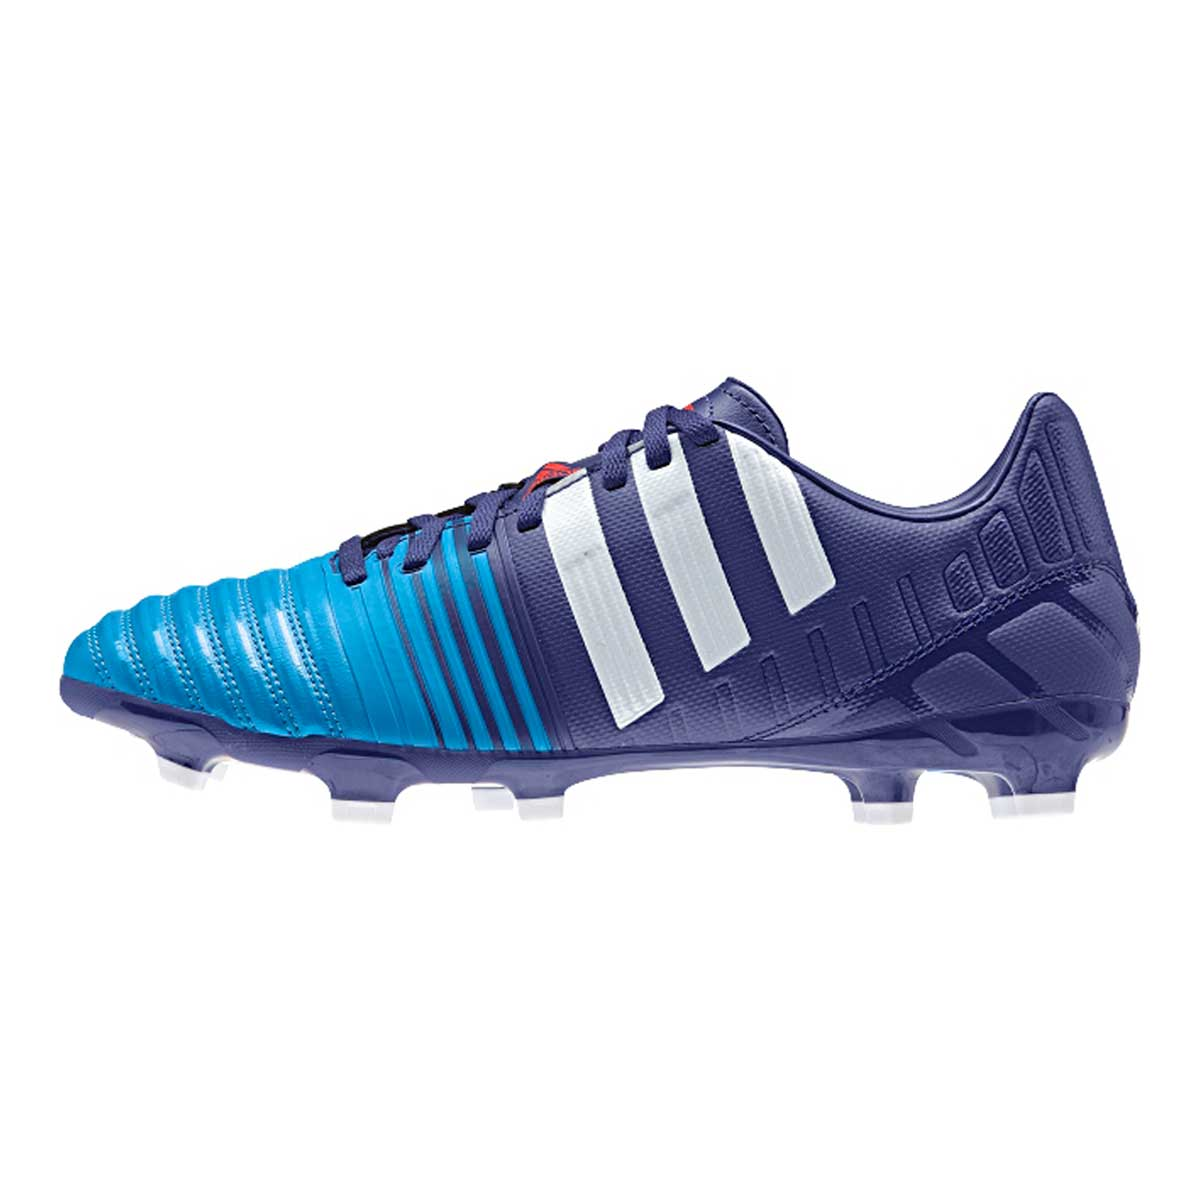 buy adidas nitrocharge 3.0 fg football shoes online india soccer shoes